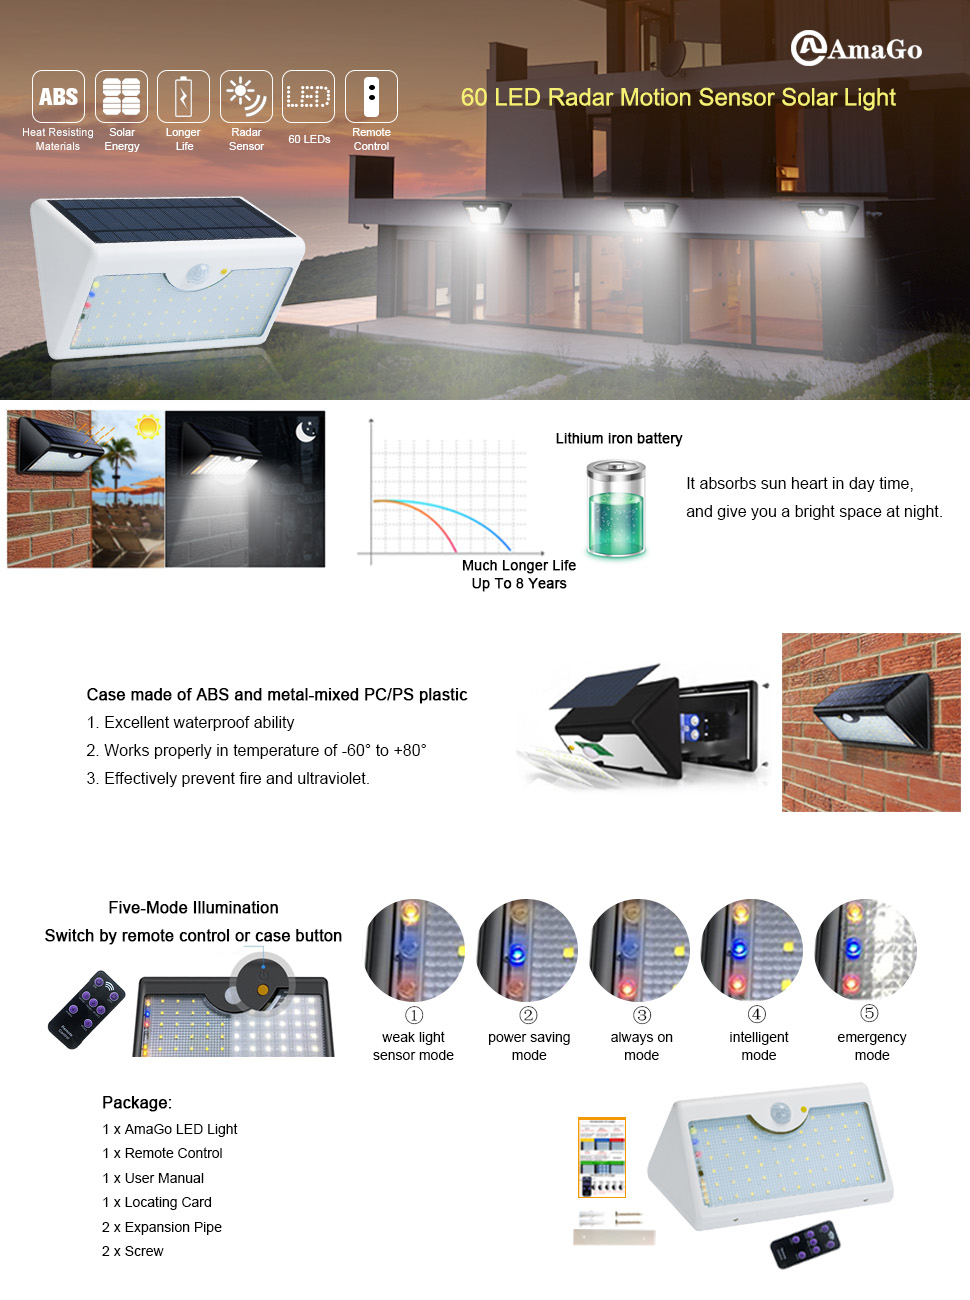 Amago Solar Wall Lights 60 White Leds Of Wide Range 1300 Lumens Wiring Diagram Two Rechargeable Led Light Is Now Available Come To Pick One Or And Up Your Hall Gate Garden Etc Which Could Help Avoid The